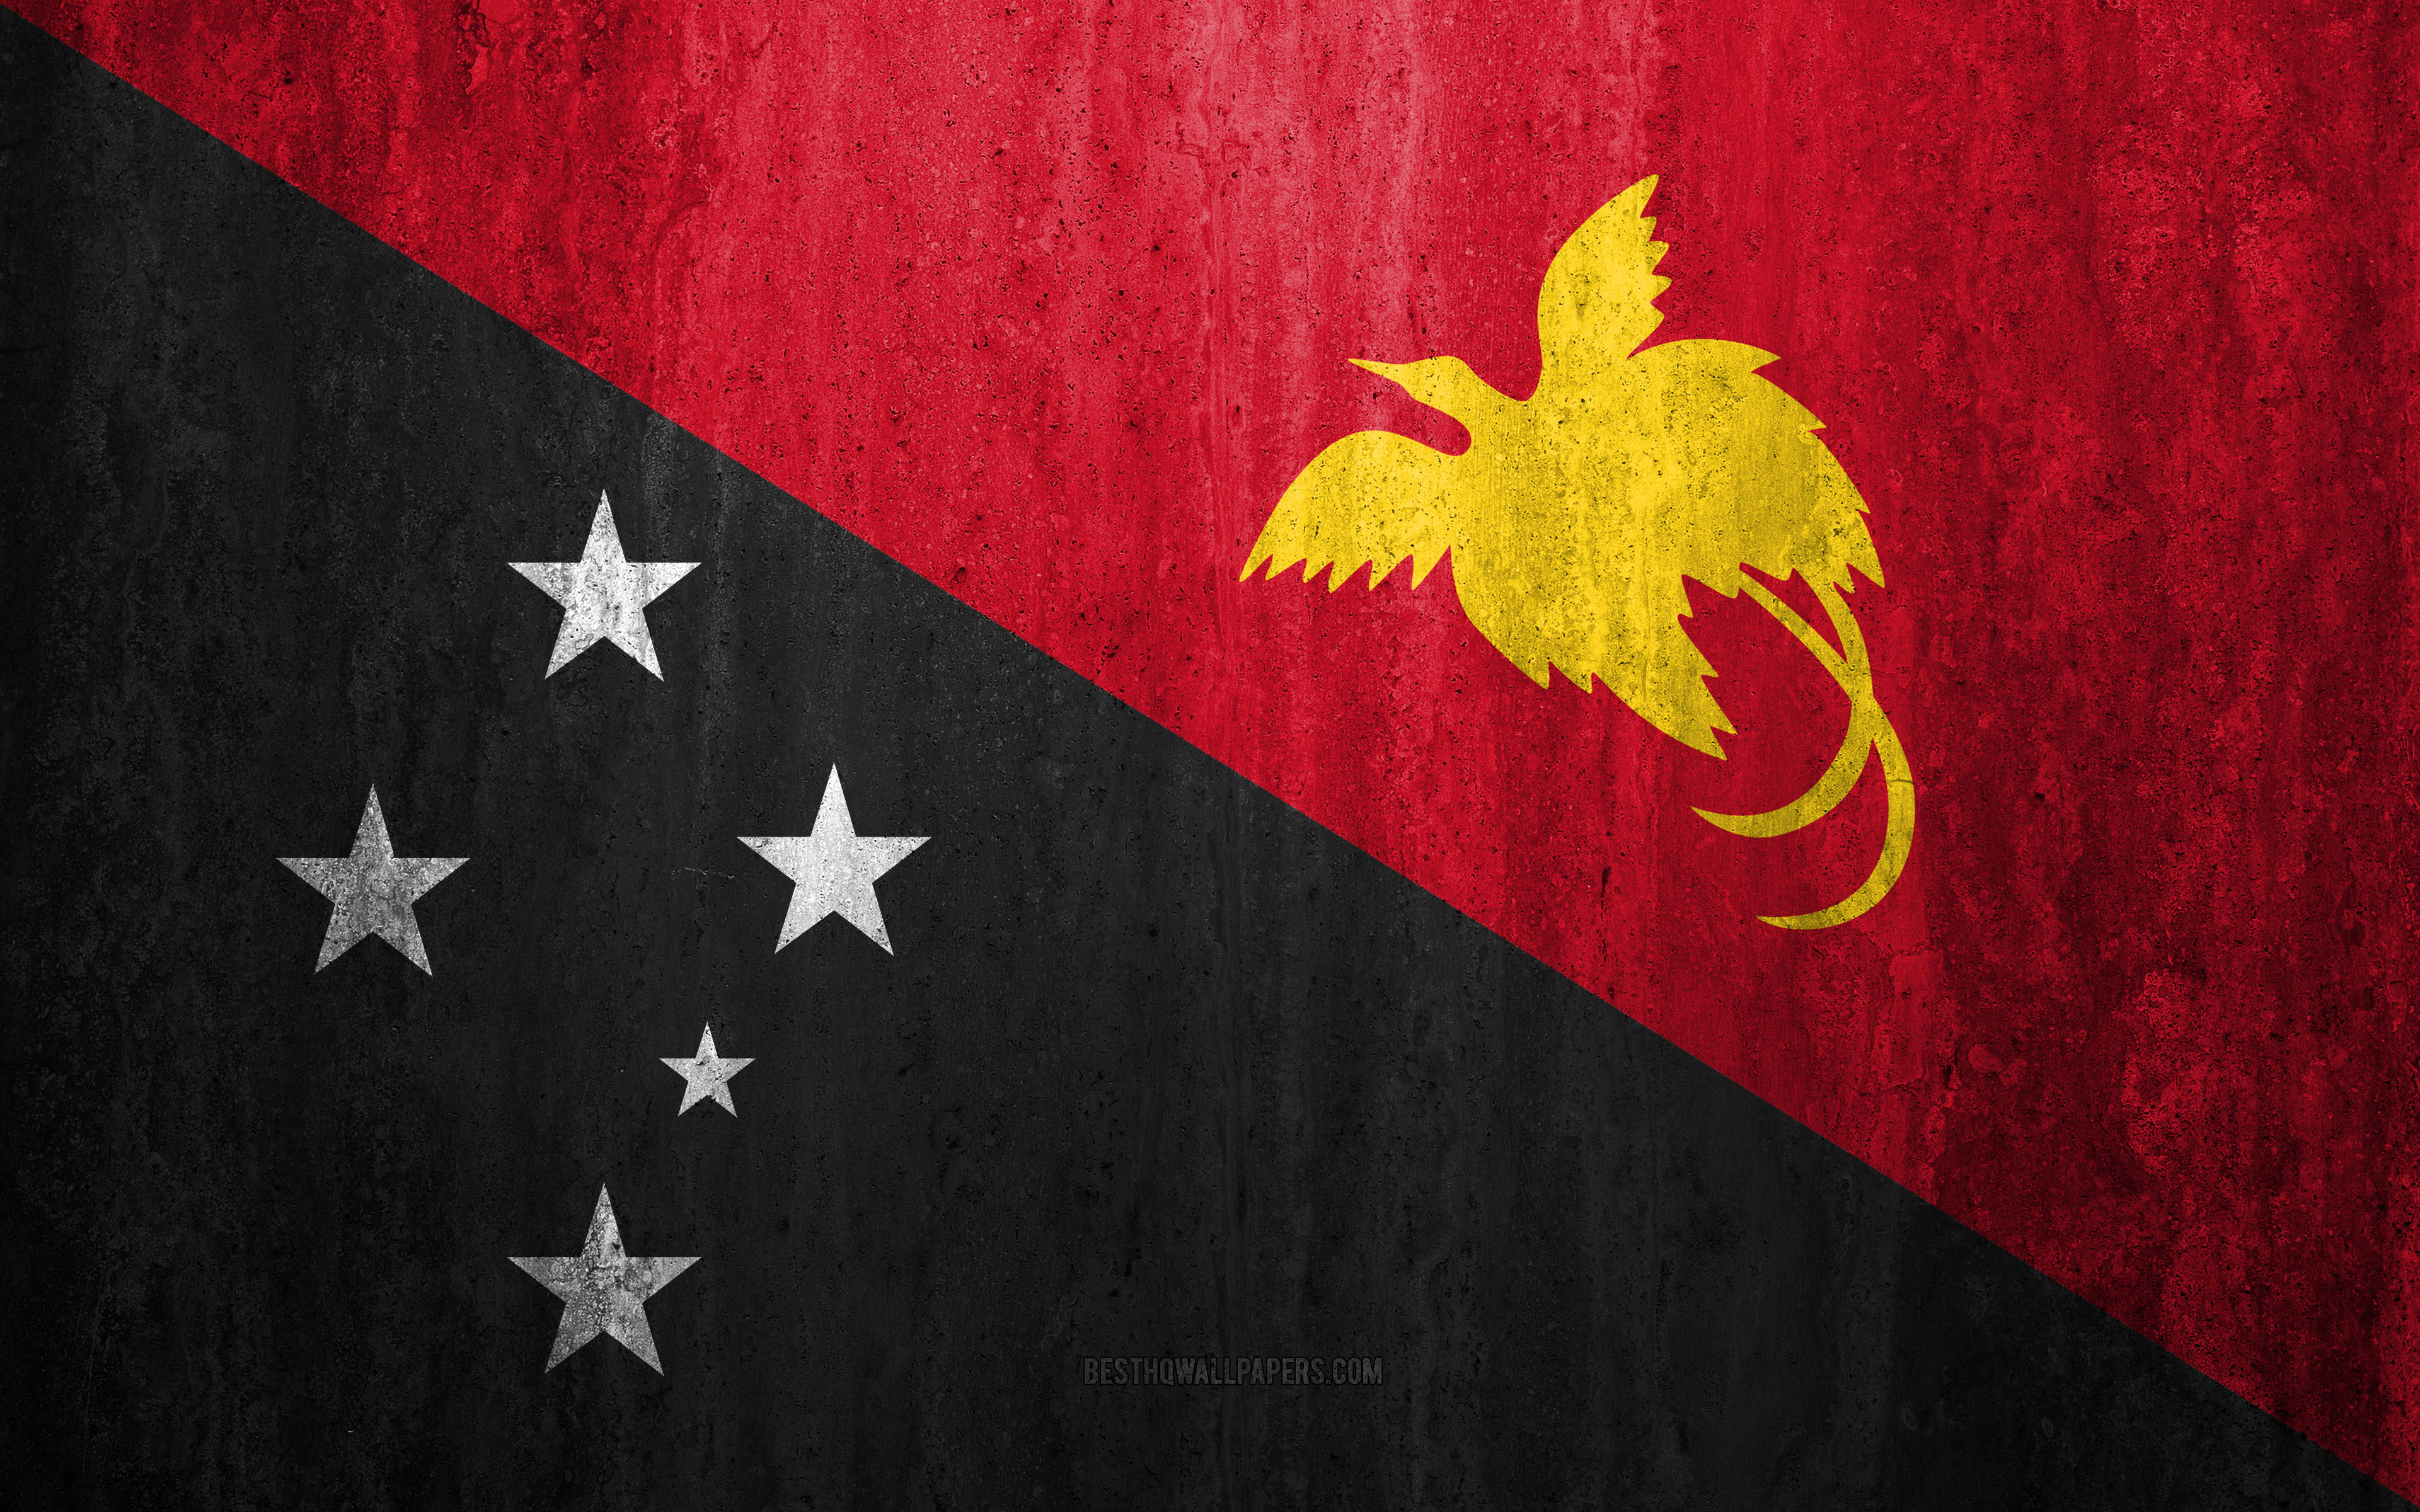 Download wallpapers Flag of Papua New Guinea 4k stone background 3840x2400